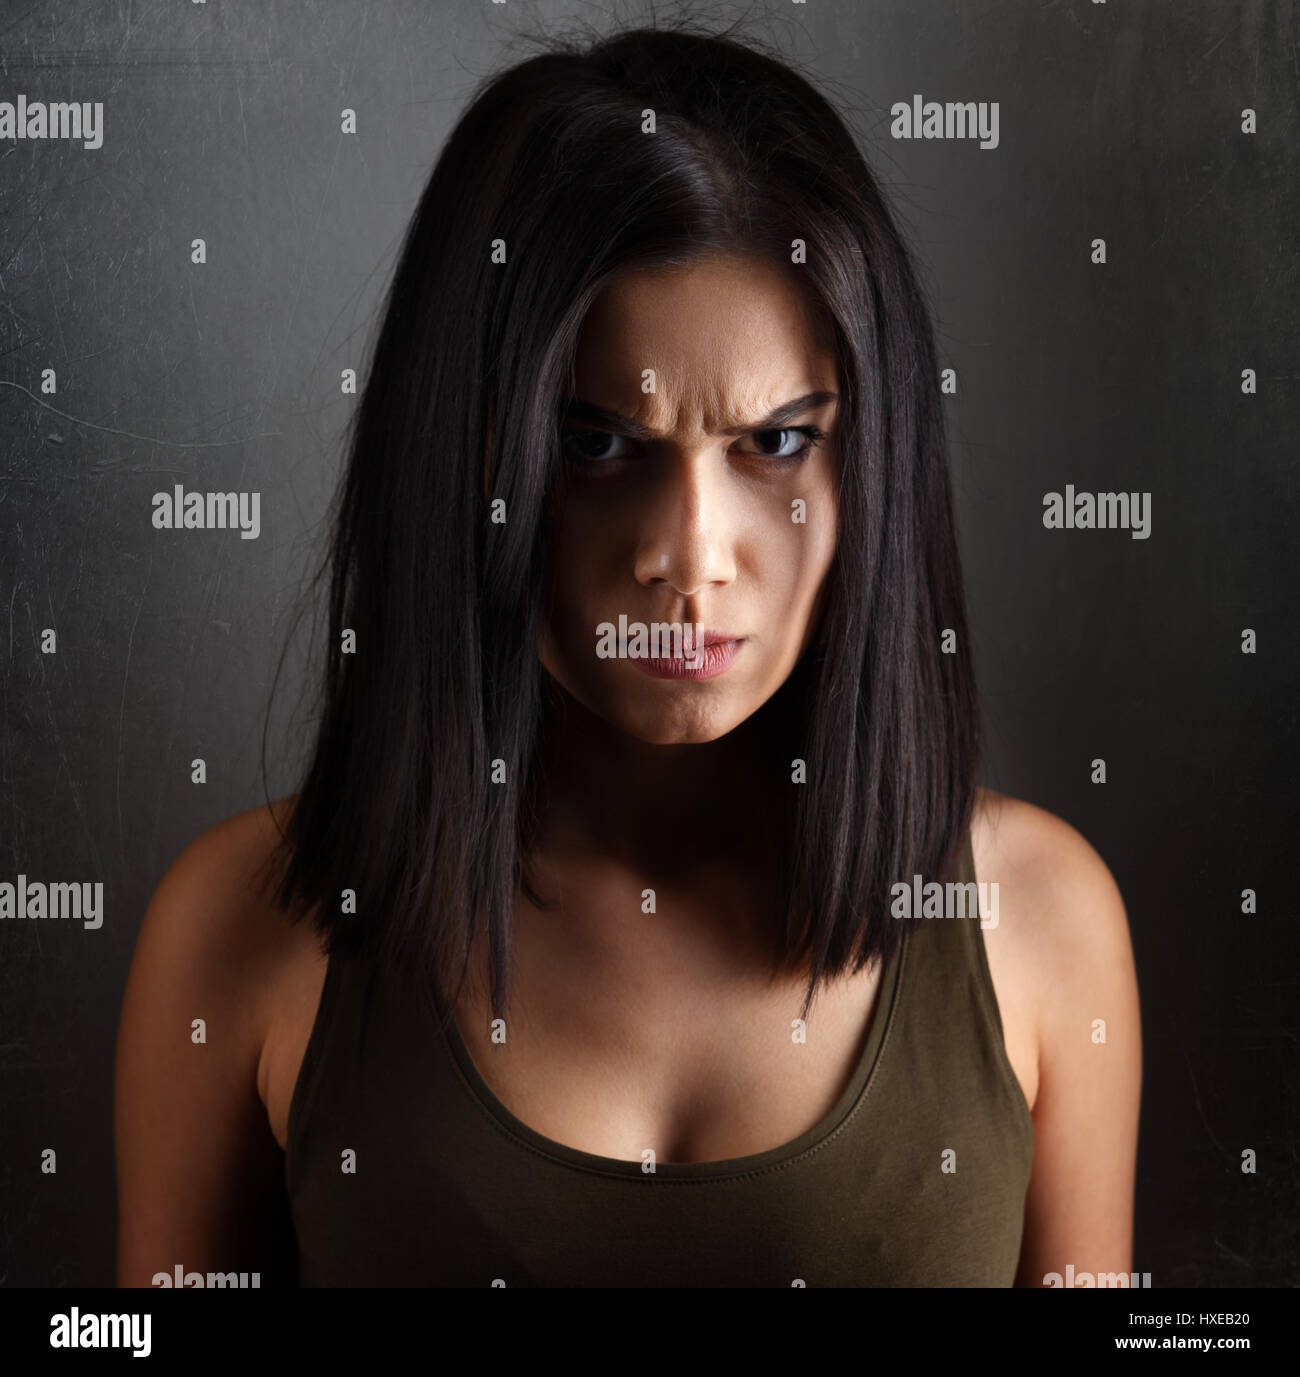 Portrait of angry evil dark woman - Stock Image